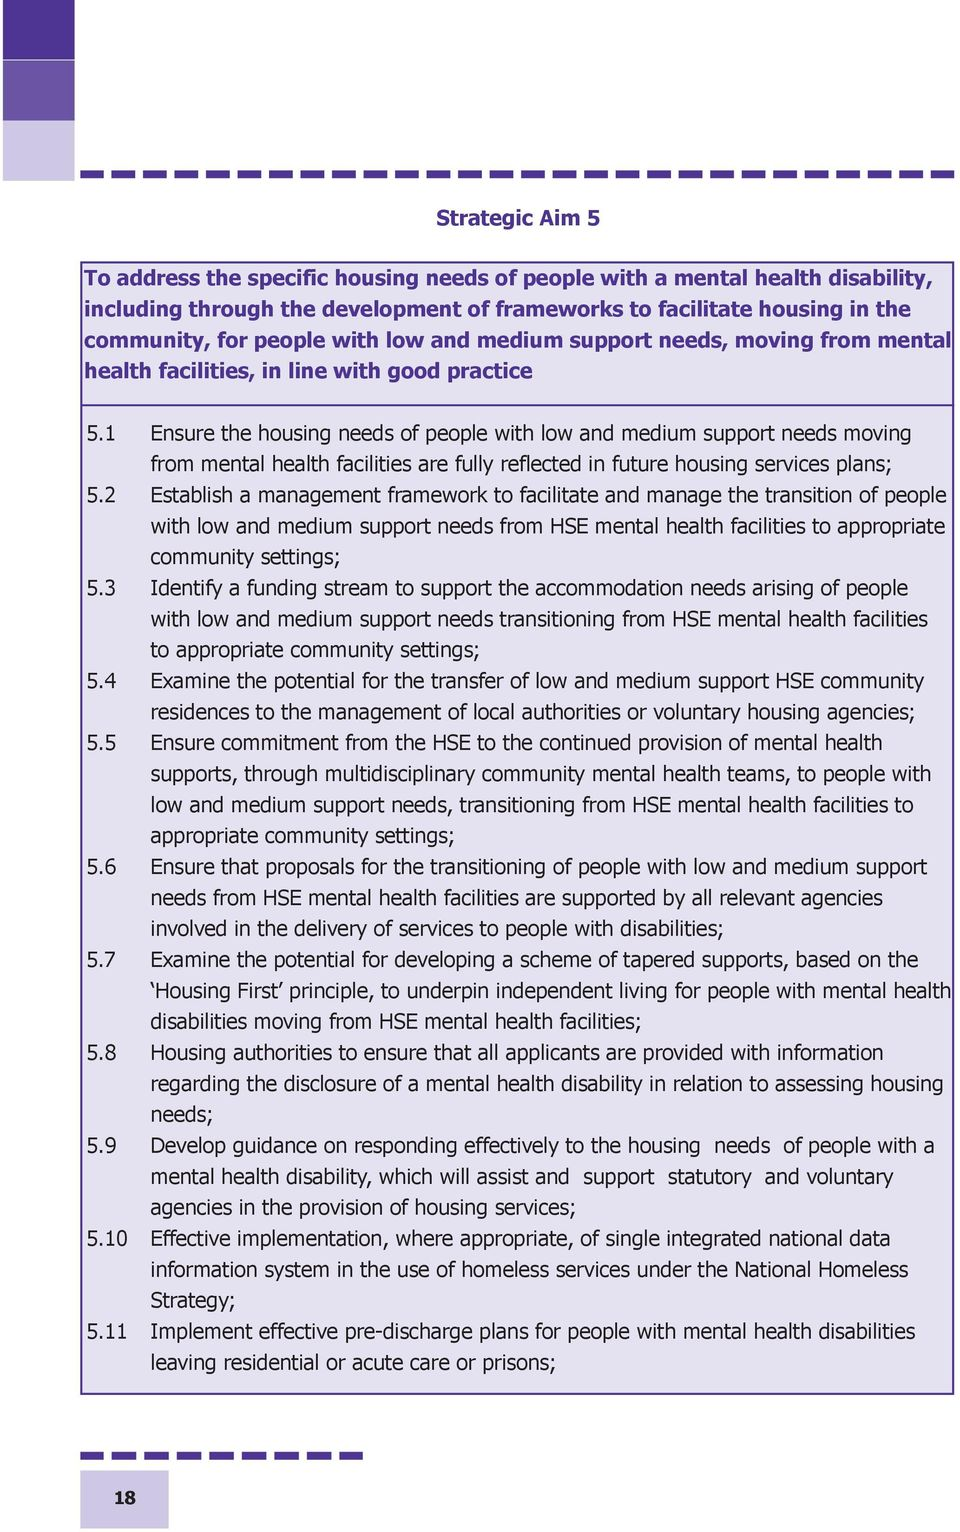 1 Ensure the housing needs of people with low and medium support needs moving from mental health facilities are fully reflected in future housing services plans; 5.